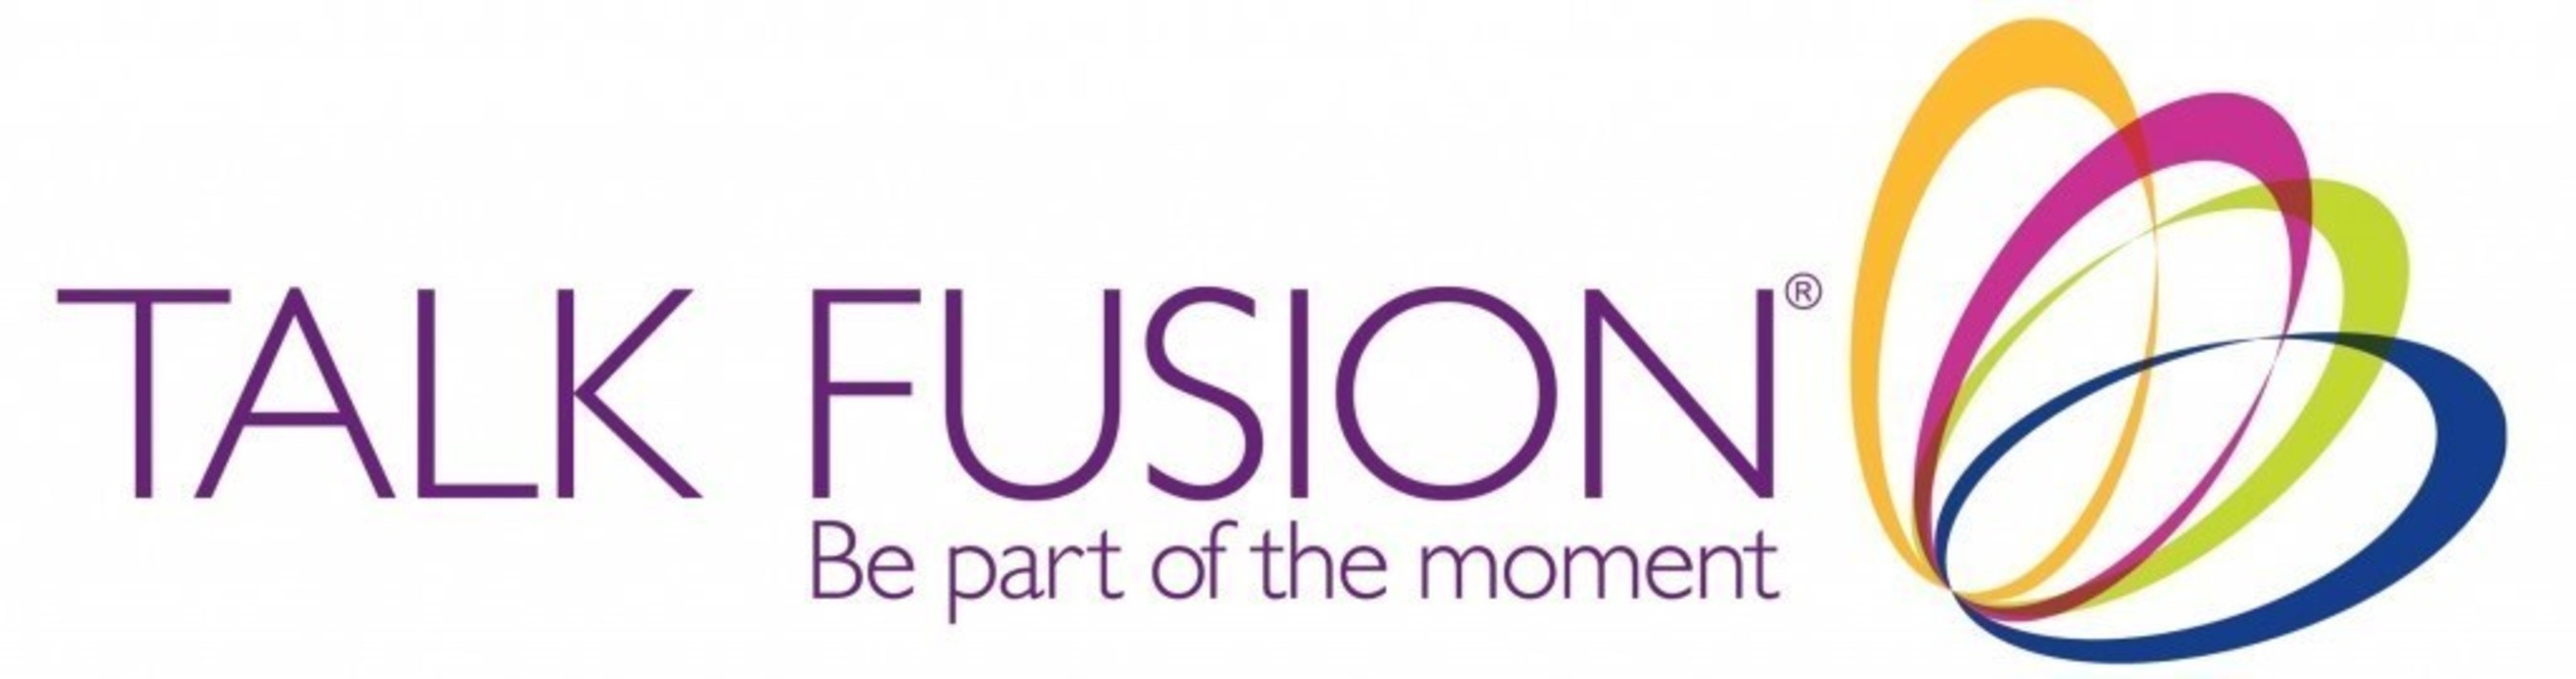 Talk Fusion Launches Redesigned Website and All-New TalkFusionInstantPay.comBoth sites make it easier than ever for Talk Fusion Associates to share the Dream Lifestyle